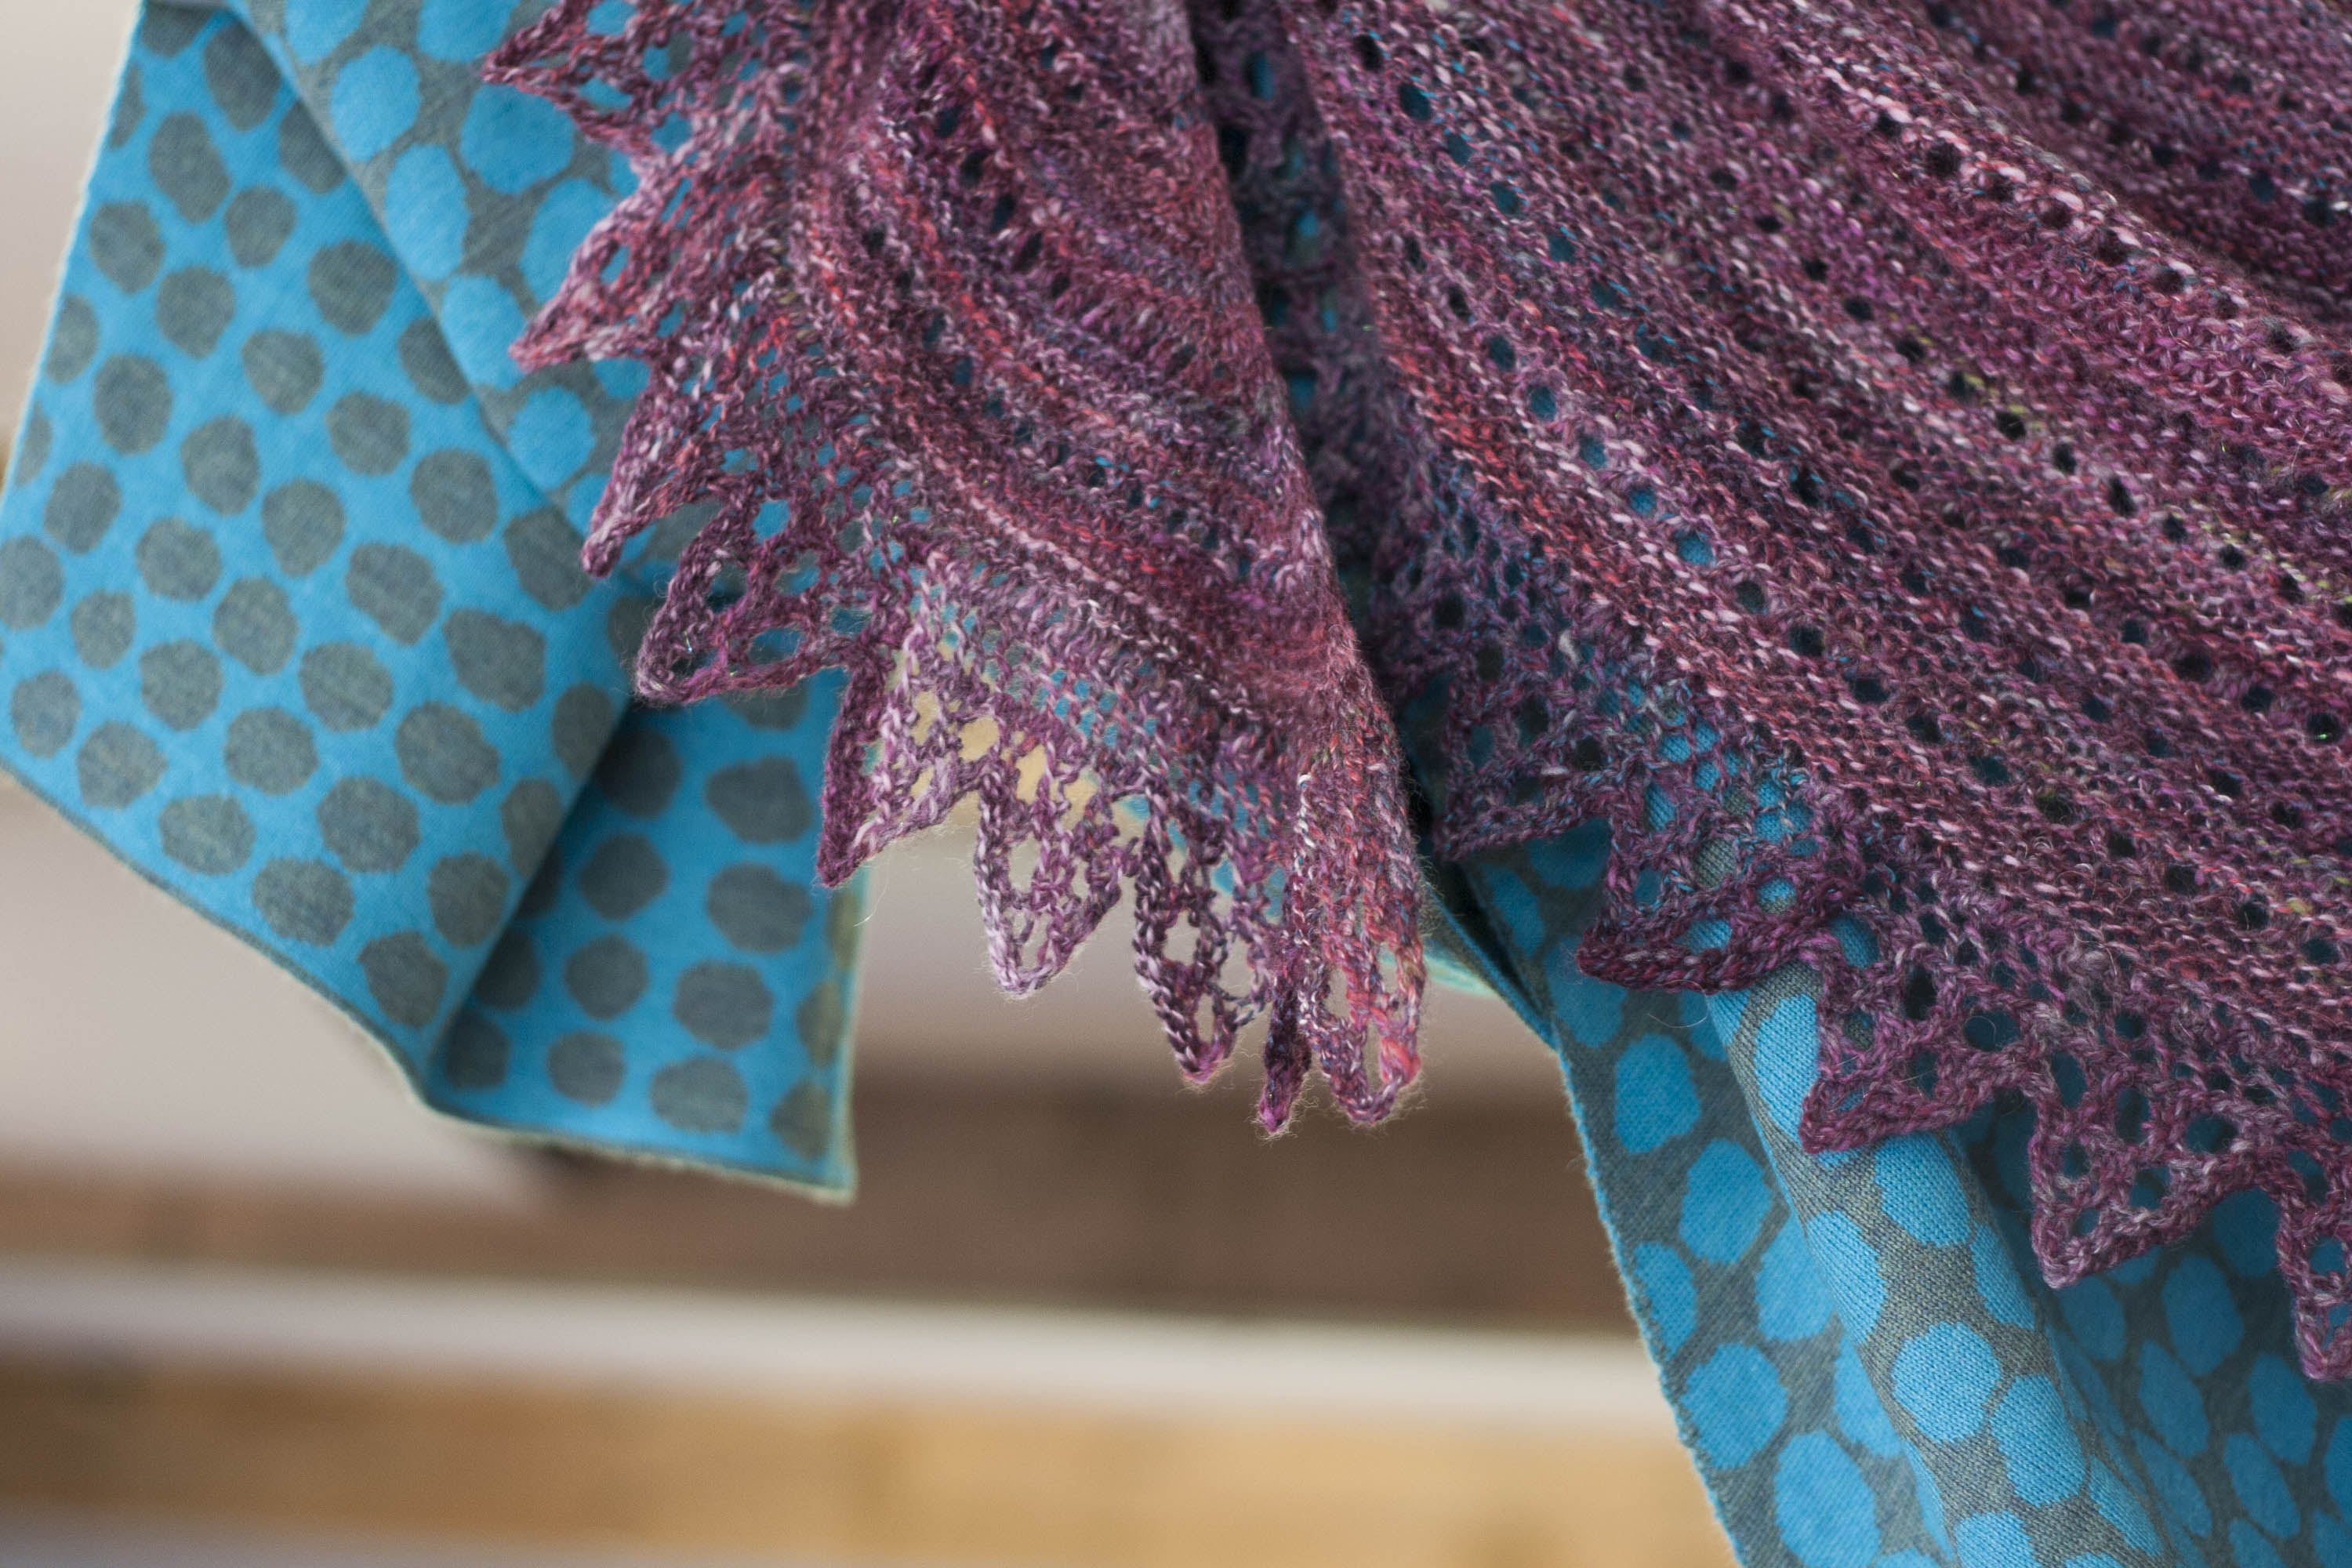 Handknitted shawl in handspun yarn in purples and plums. With lace edging. Hangs over a contemporary Nielanell shawl in blues with an abstract pattern.